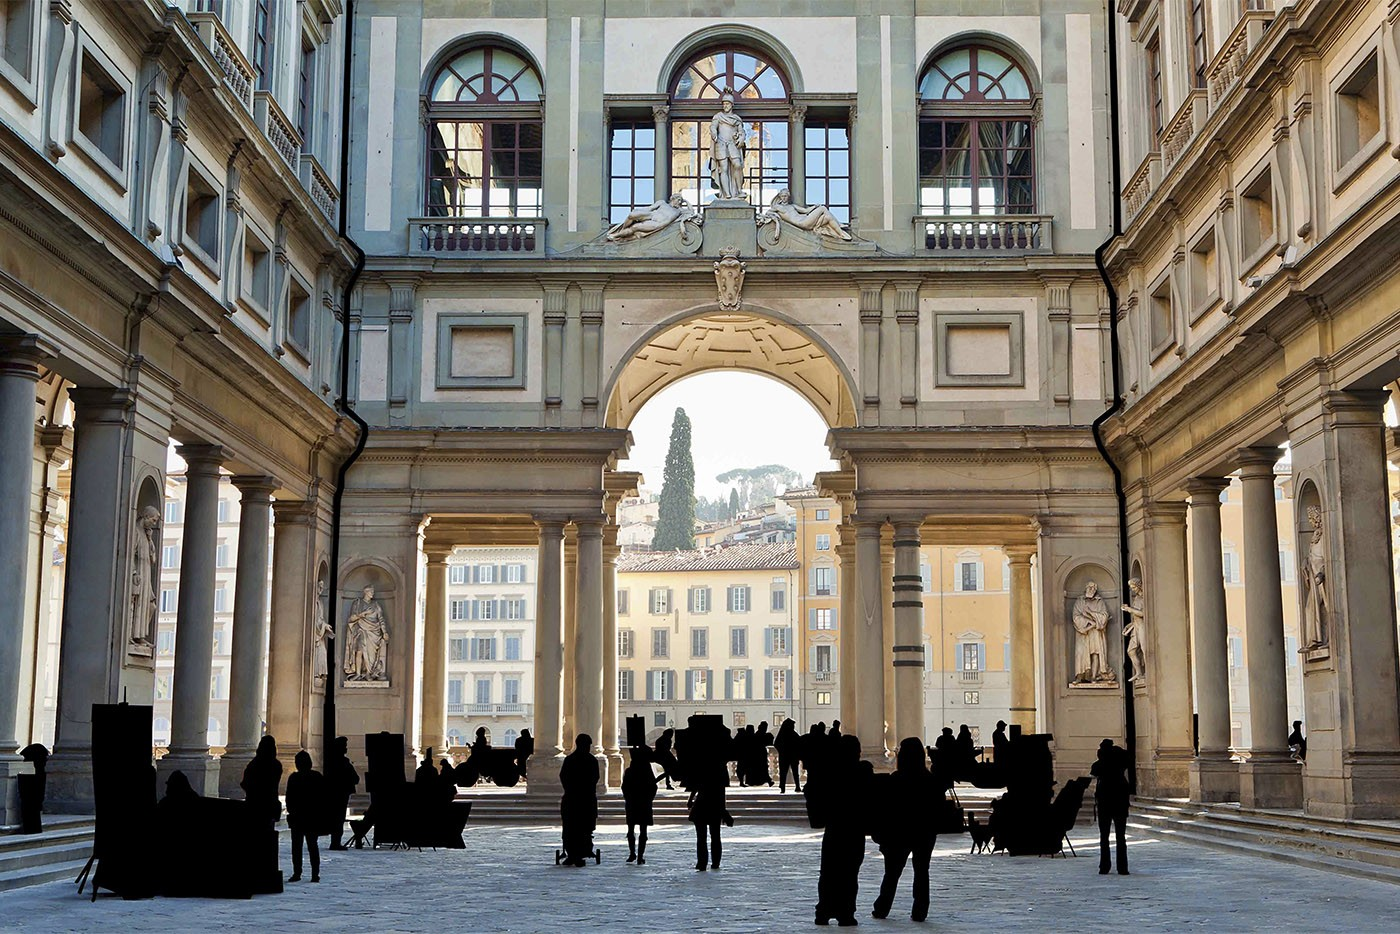 Galerie Des Offices Florence Réservation Un Week End à Florence Le City Guide Little Weekends